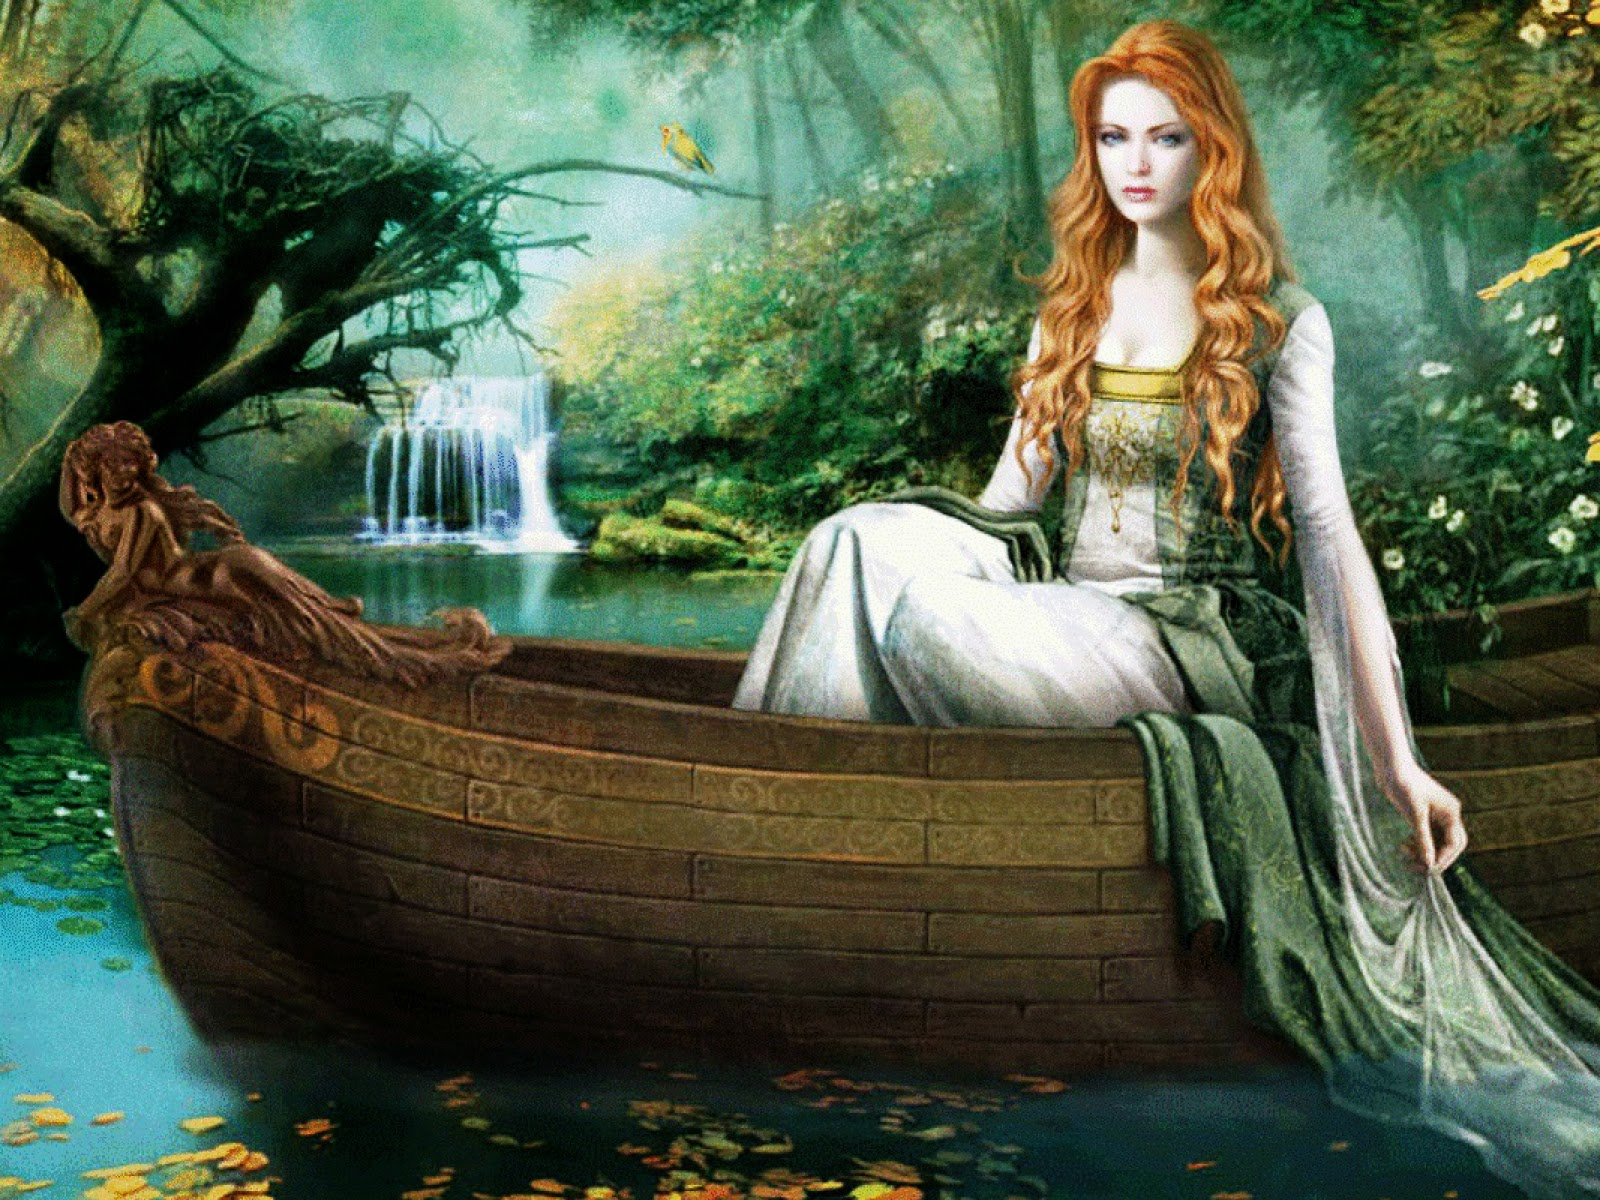 3d fantasy girls hd wallpapers awesome wallpapers fantasy girls for computer desktop voltagebd Images